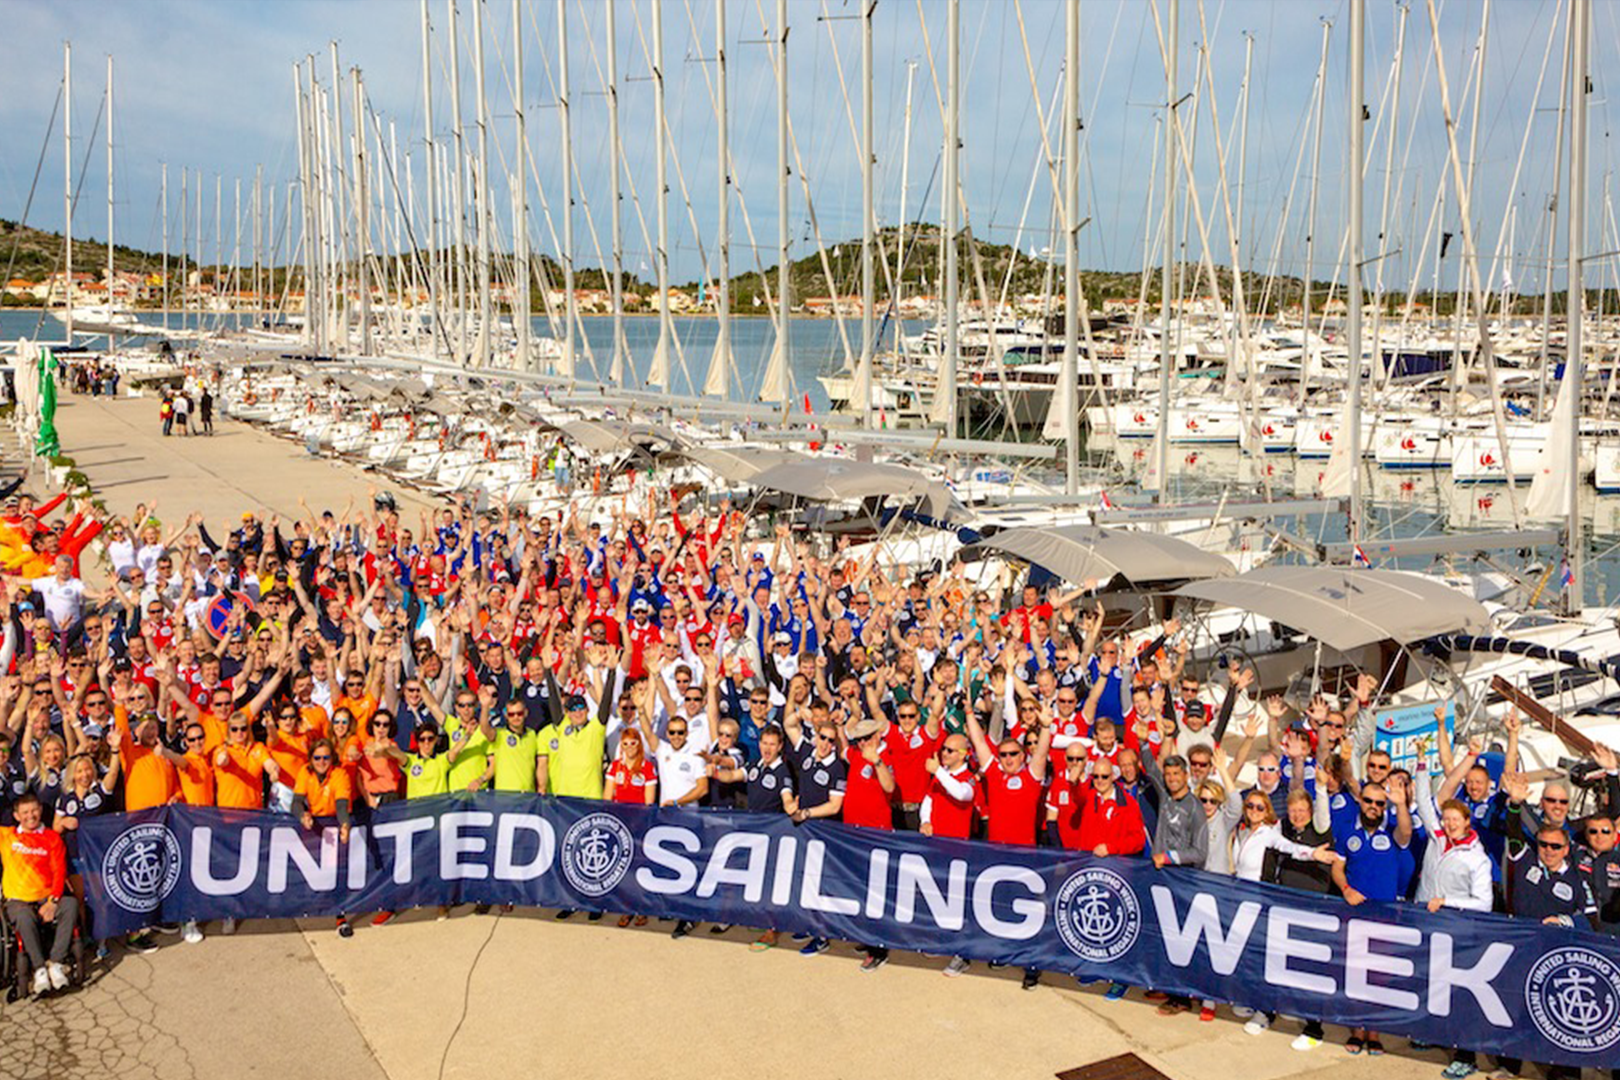 2.05-09.05.2020, Хорватия,</br>United Sailing Week